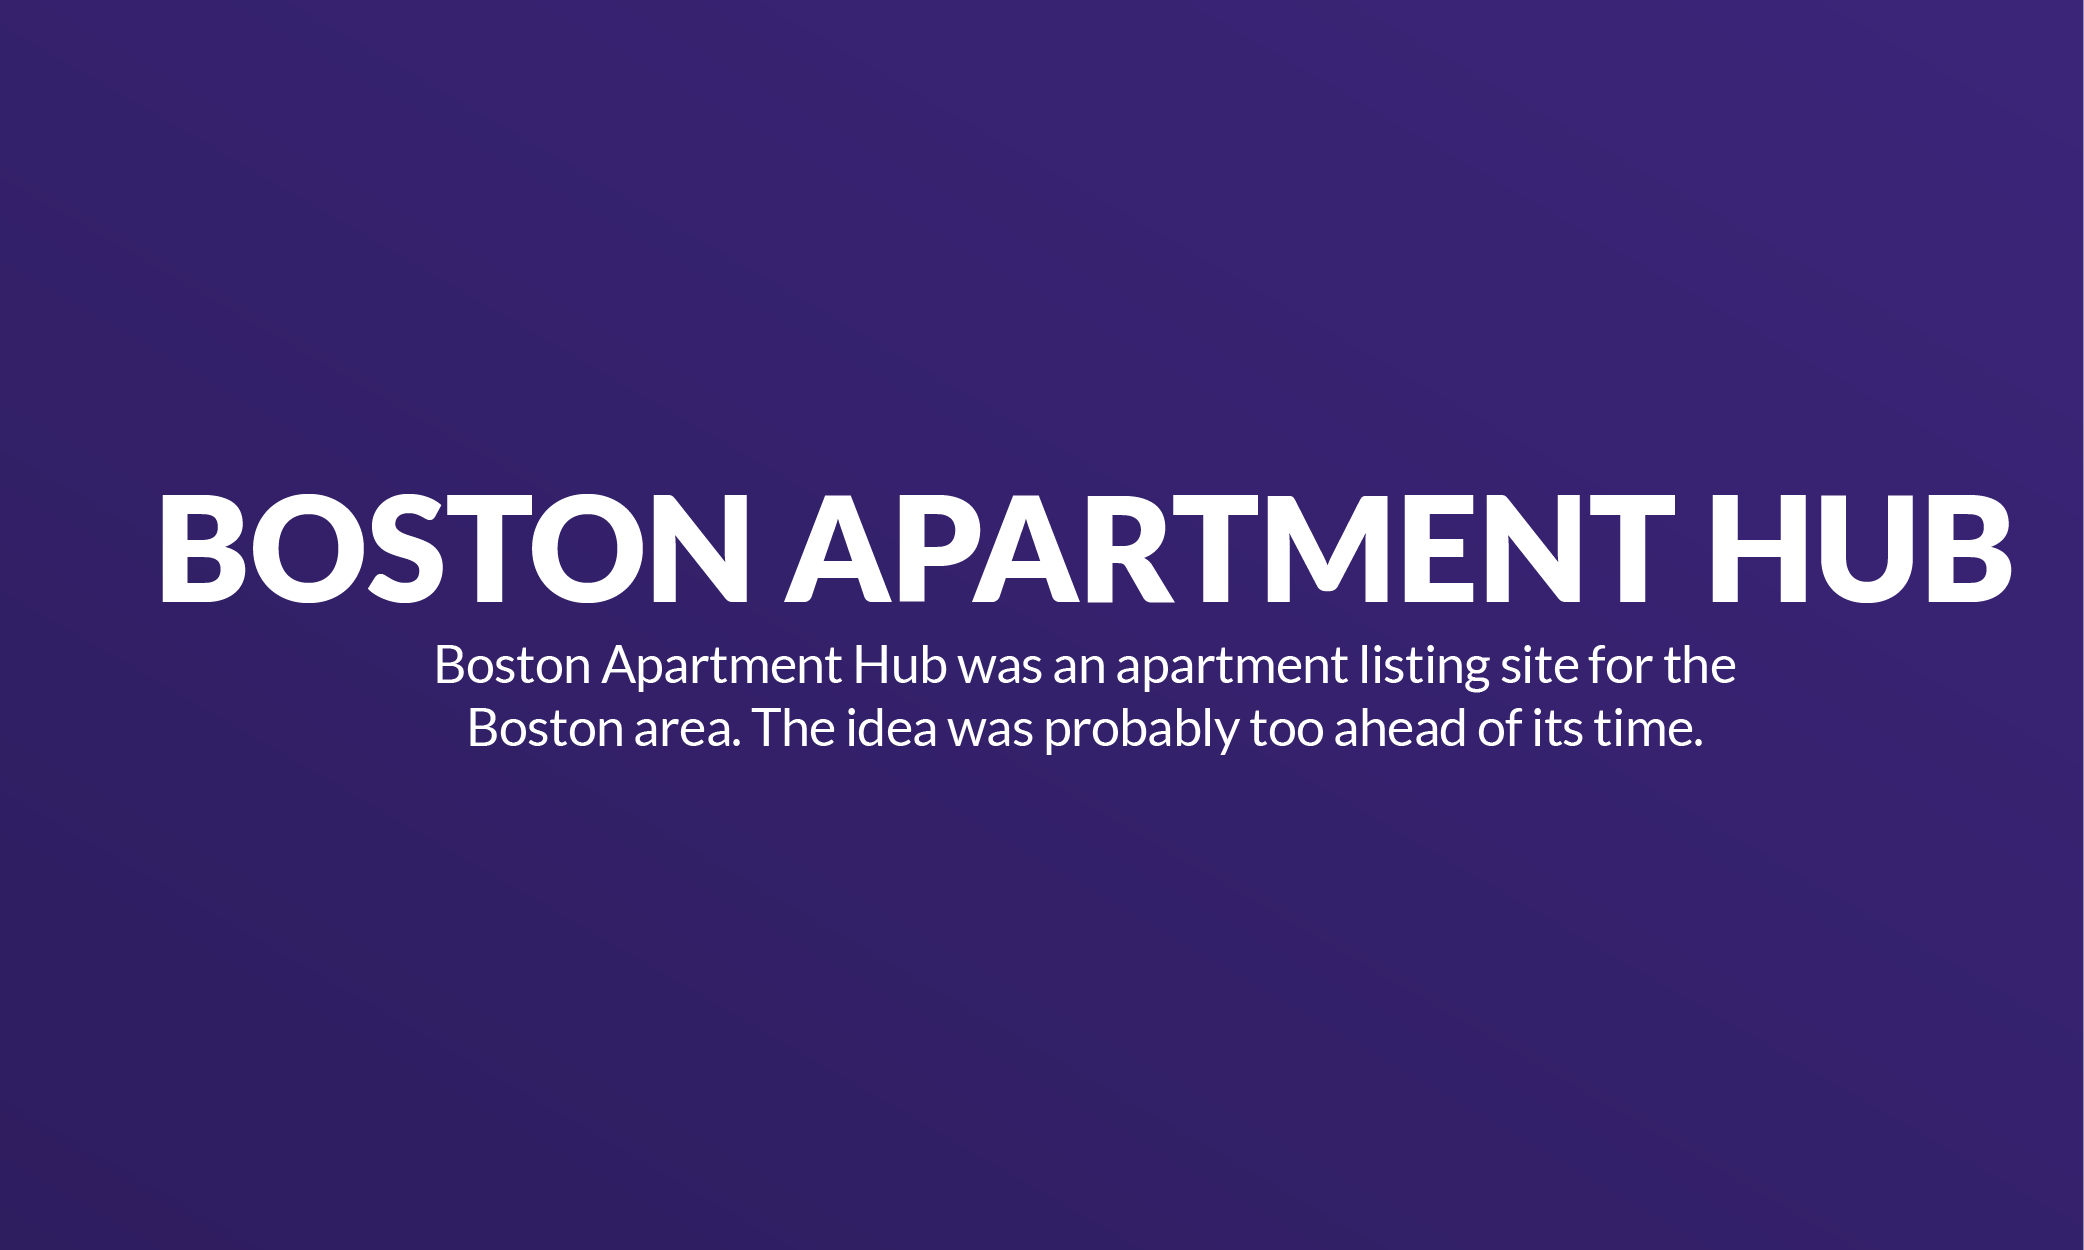 Boston Apartment Hub: Failed to grow a side project into a business